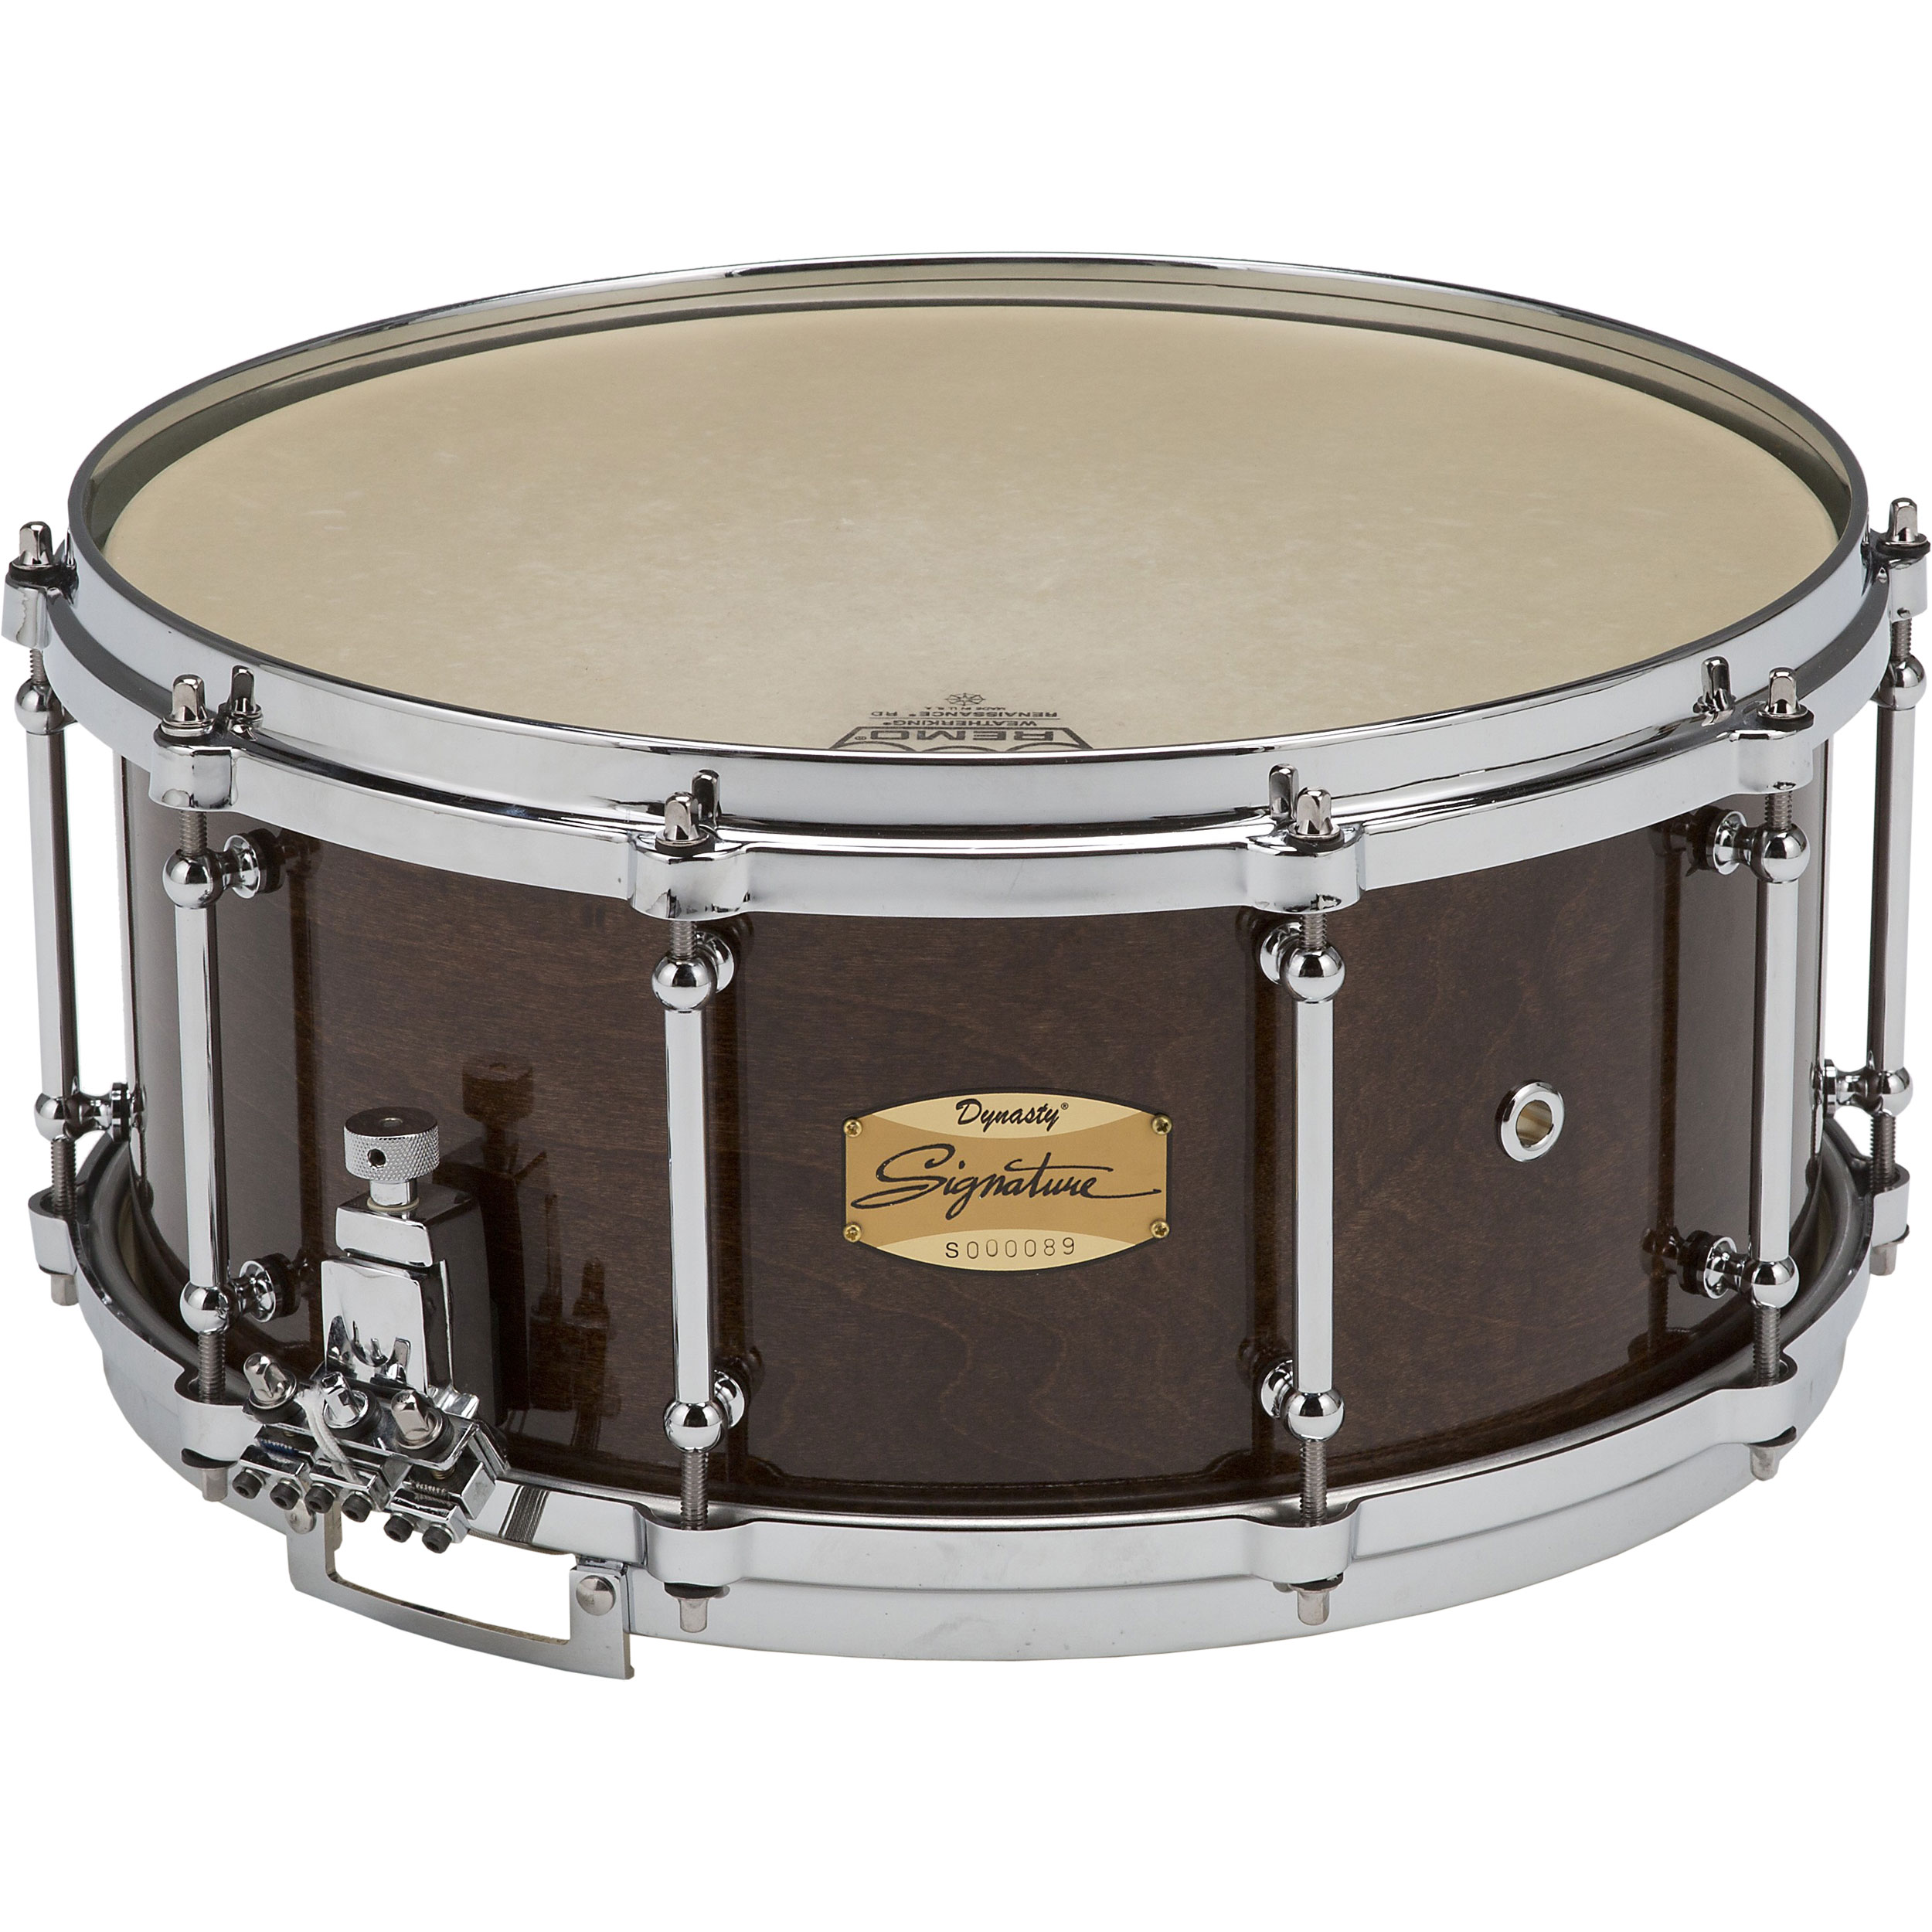 """Dynasty 14"""" x 6.5"""" Signature Professional Series Concert Snare Drum"""